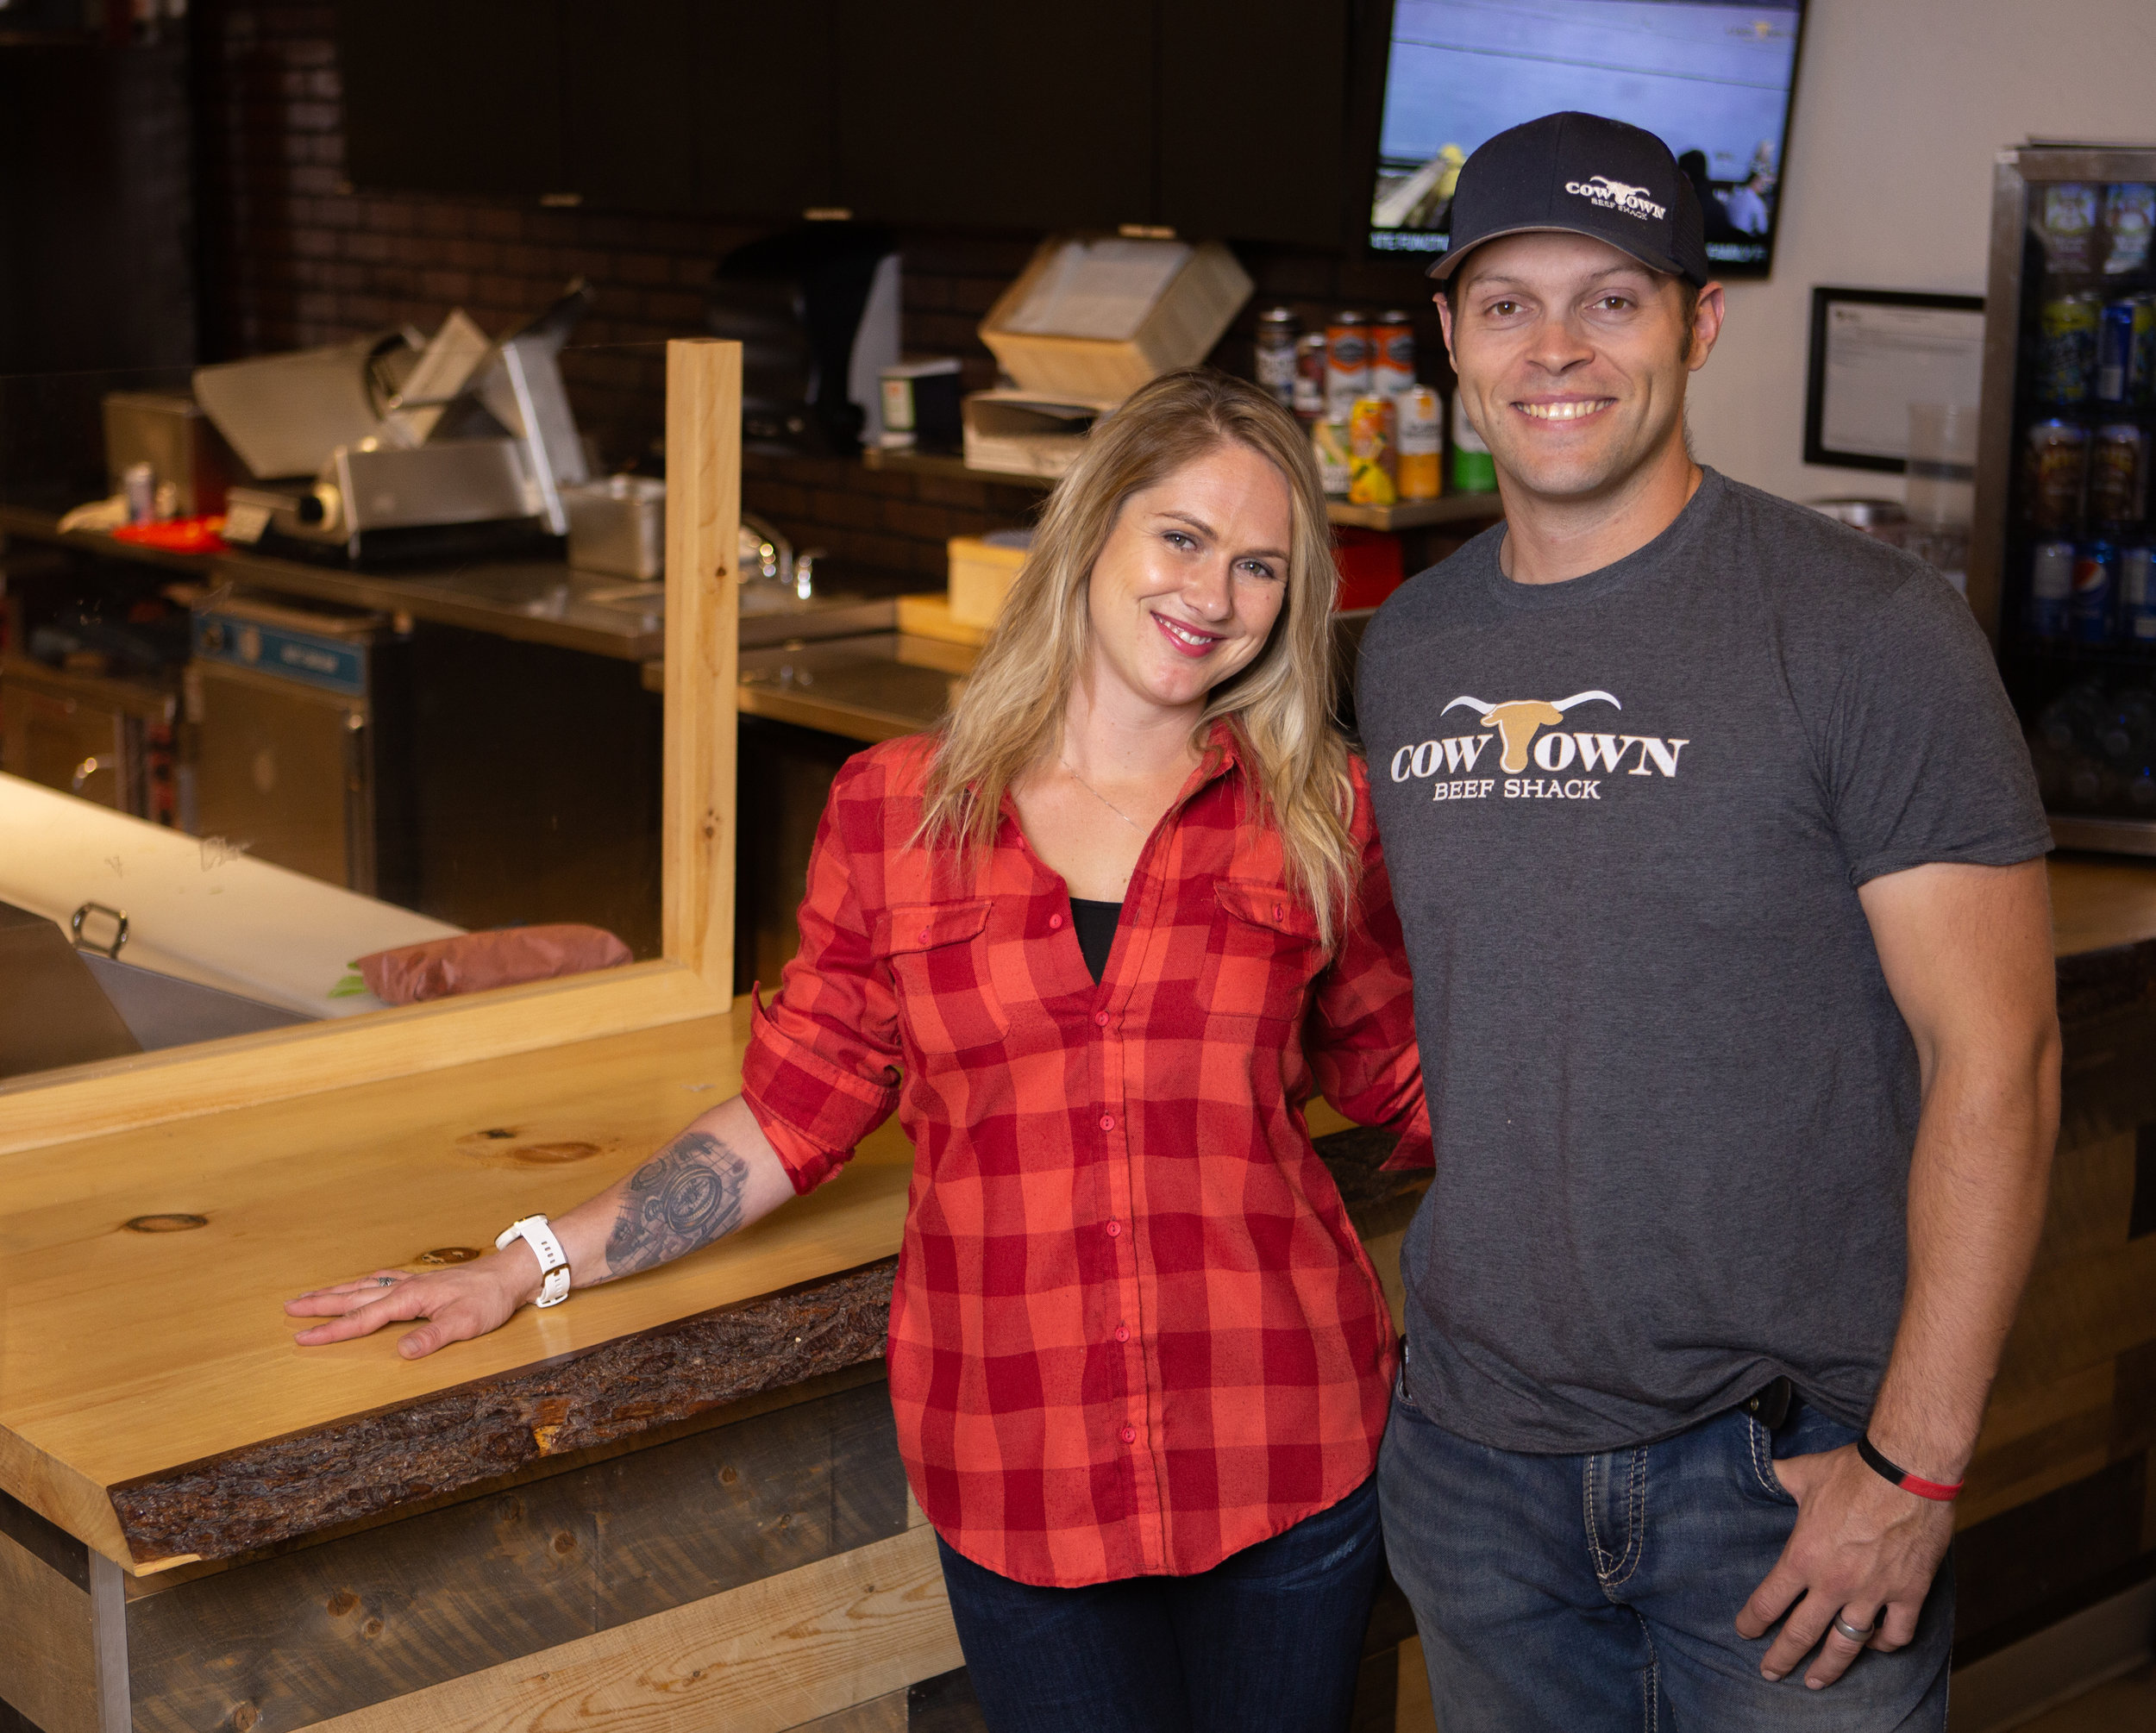 Meet us! - Reed and Nicole started Cowtown Beef Shack in Bragg Creek July of 2018. Having an affinity for the outdoors, and using the spectacular trails in the area.. Saw a need for something unique dining experience to the area. Somewhere you can go get a great sandwich, and a craft beer after a hard bike ride in West Bragg.